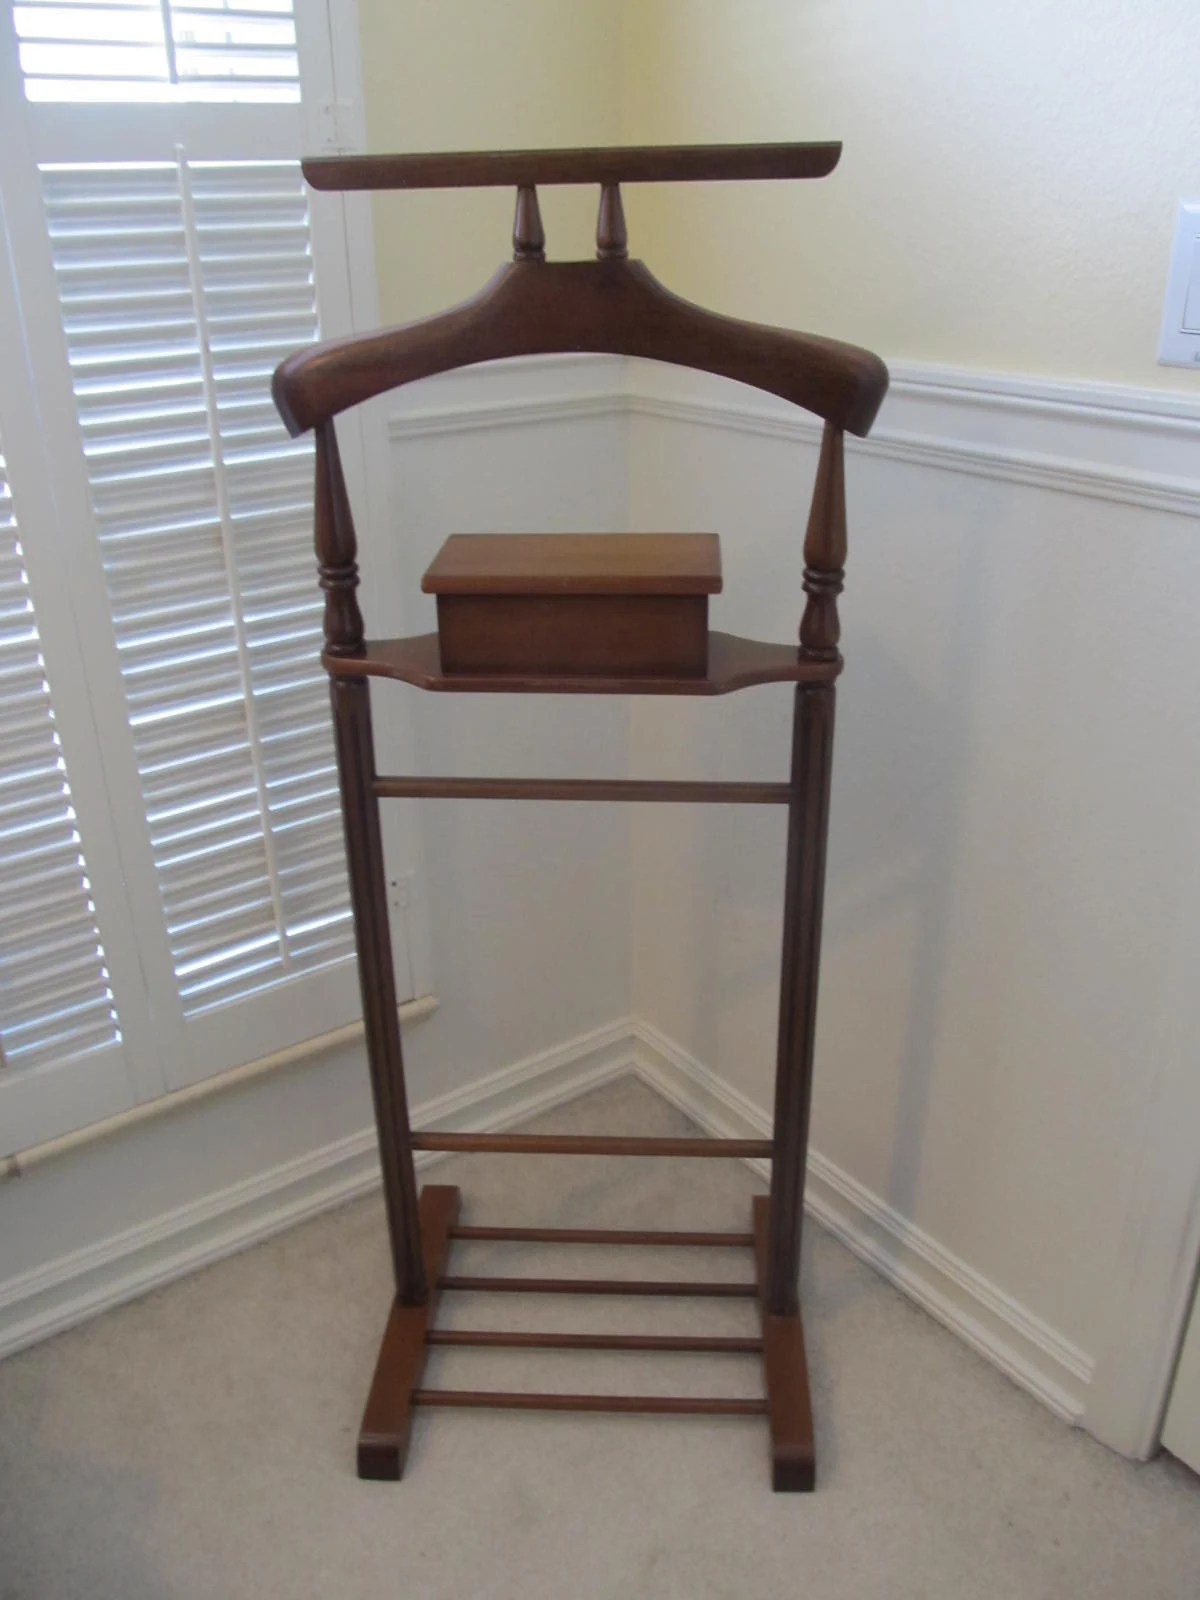 mens chair valet stand plans for adirondack template etsy mid century butler furniture hollywood regency clothing suits